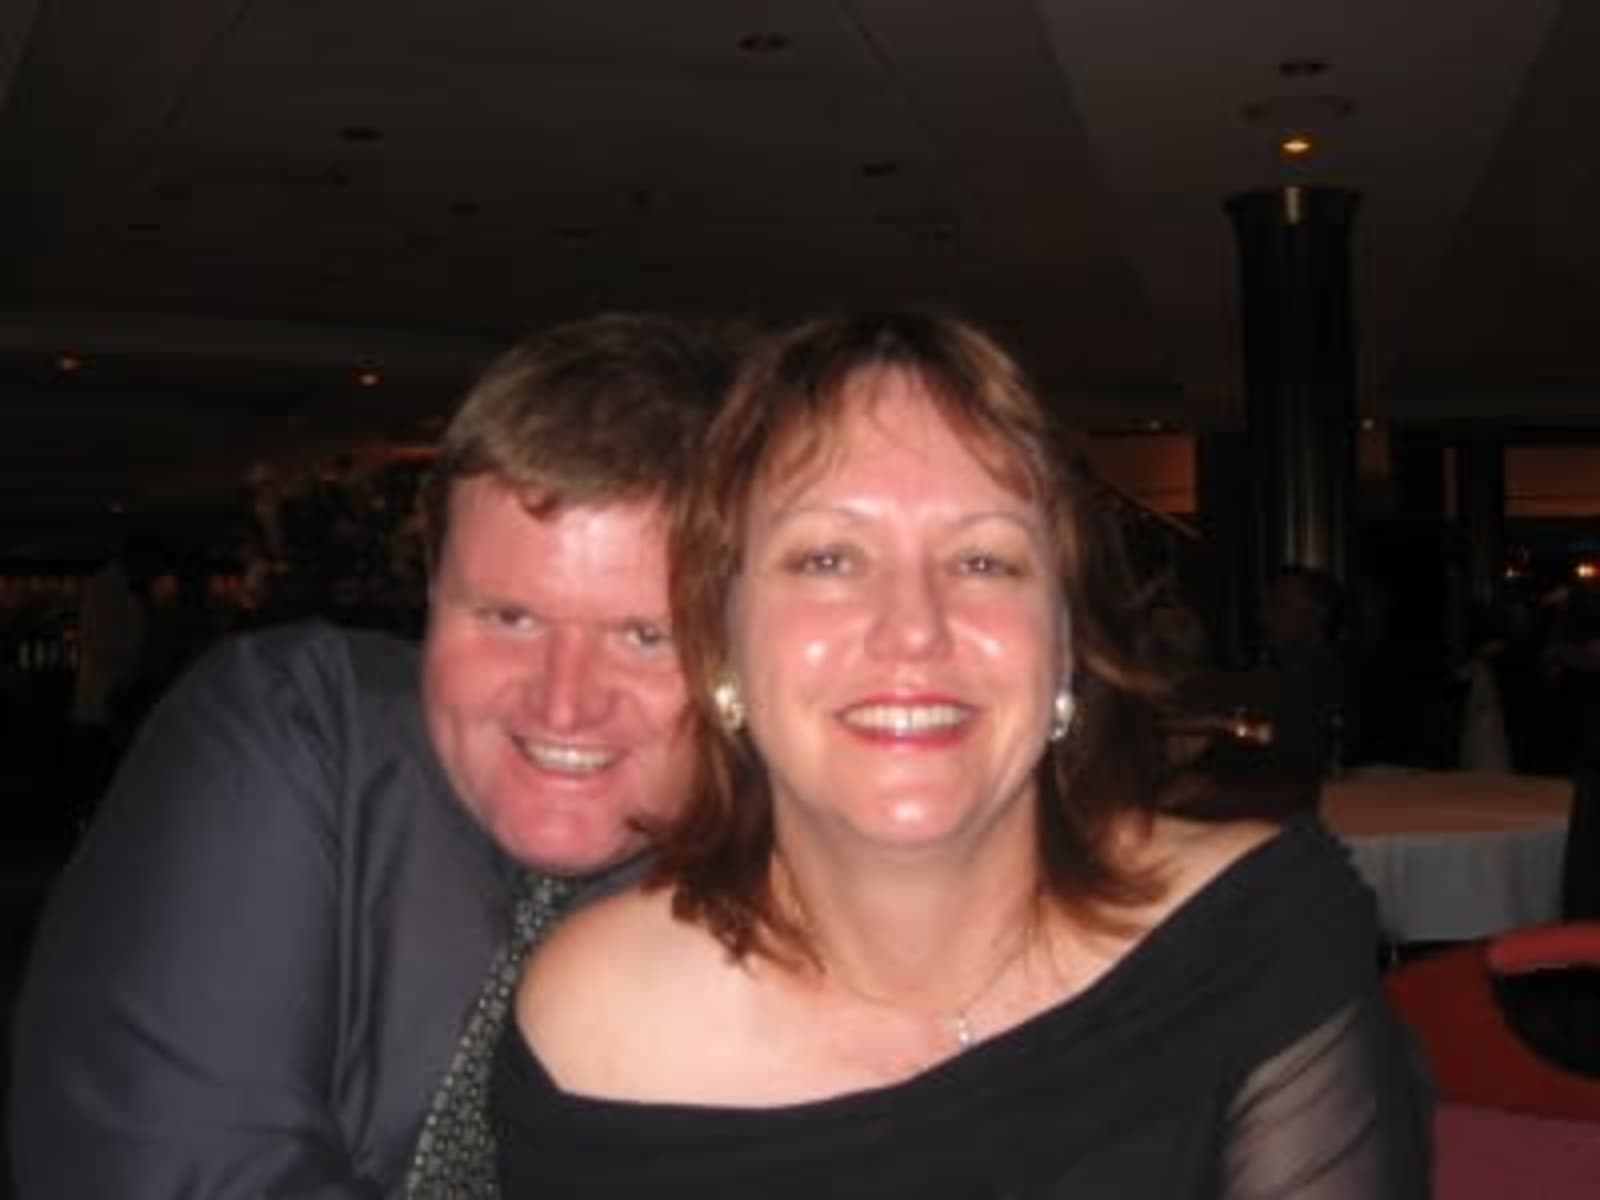 Joanne & Wayne from Elanora, Queensland, Australia